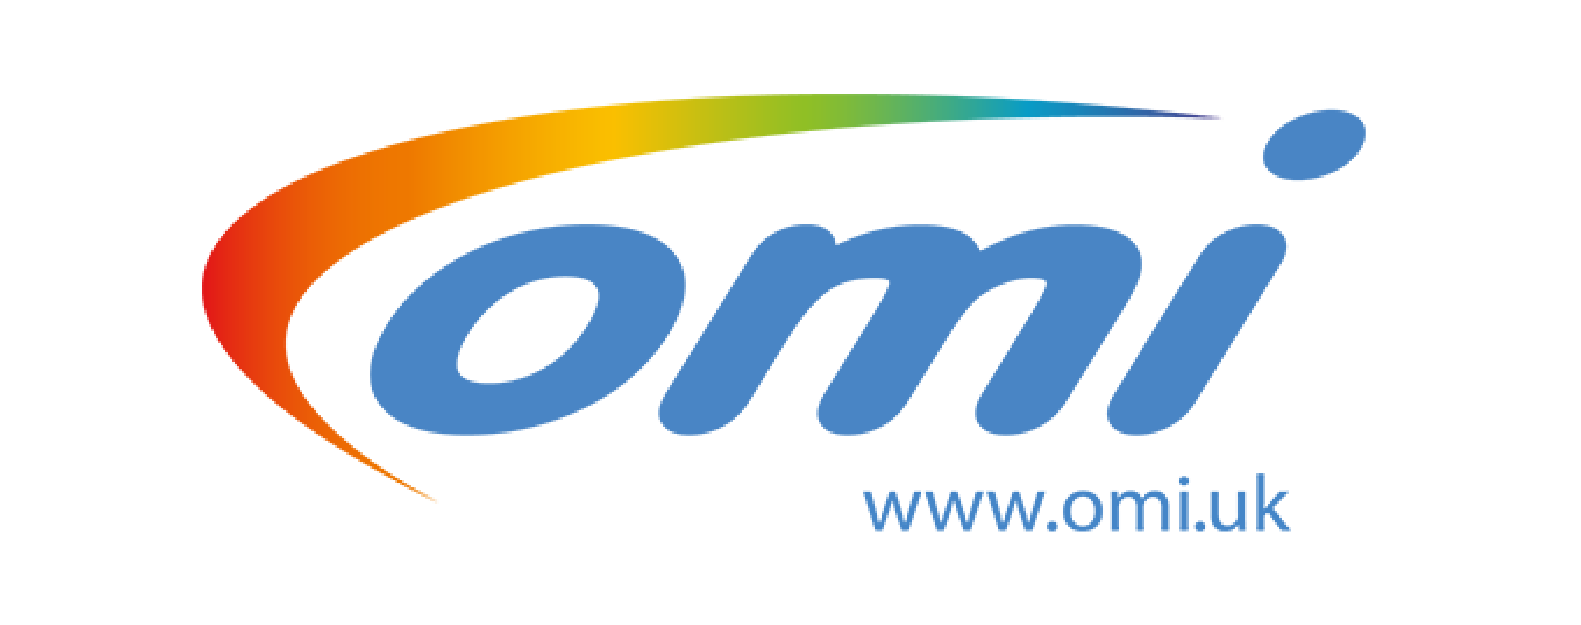 Omi Interactive